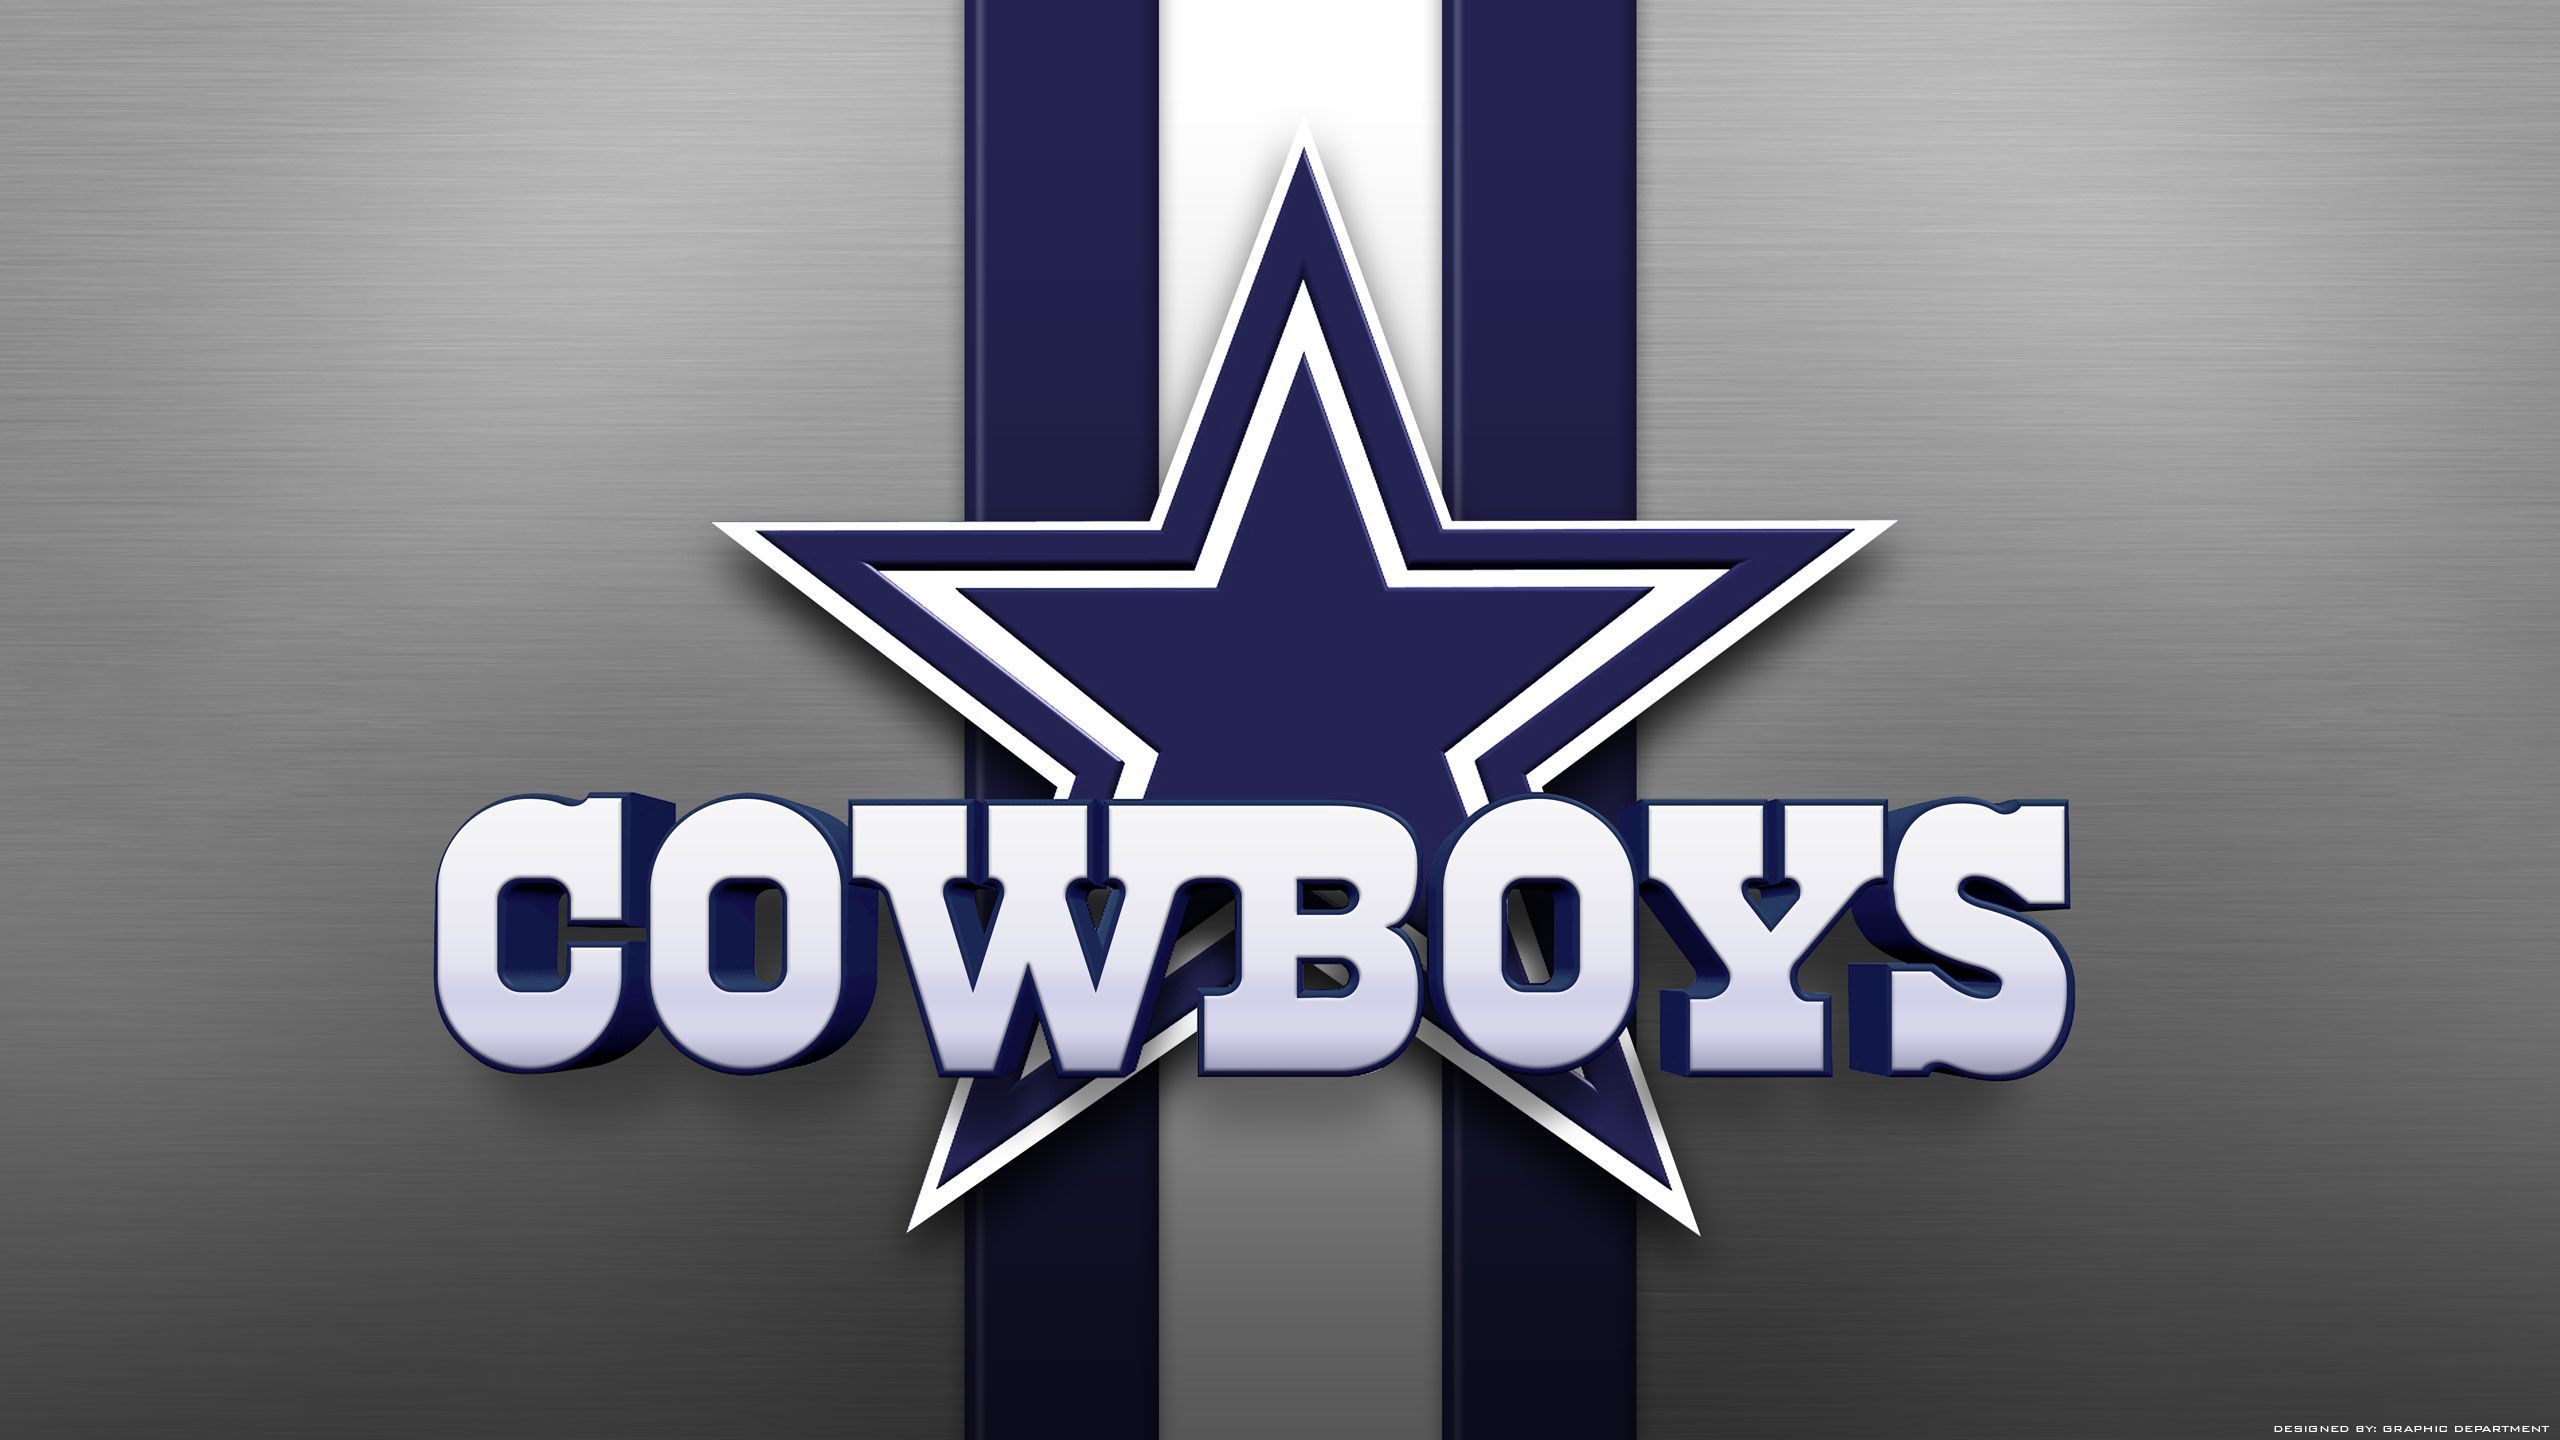 Great Wallpaper Football Cowboys - 318ff6350db8e539a30fc30d96fa6bd2  Pic_45895 .jpg